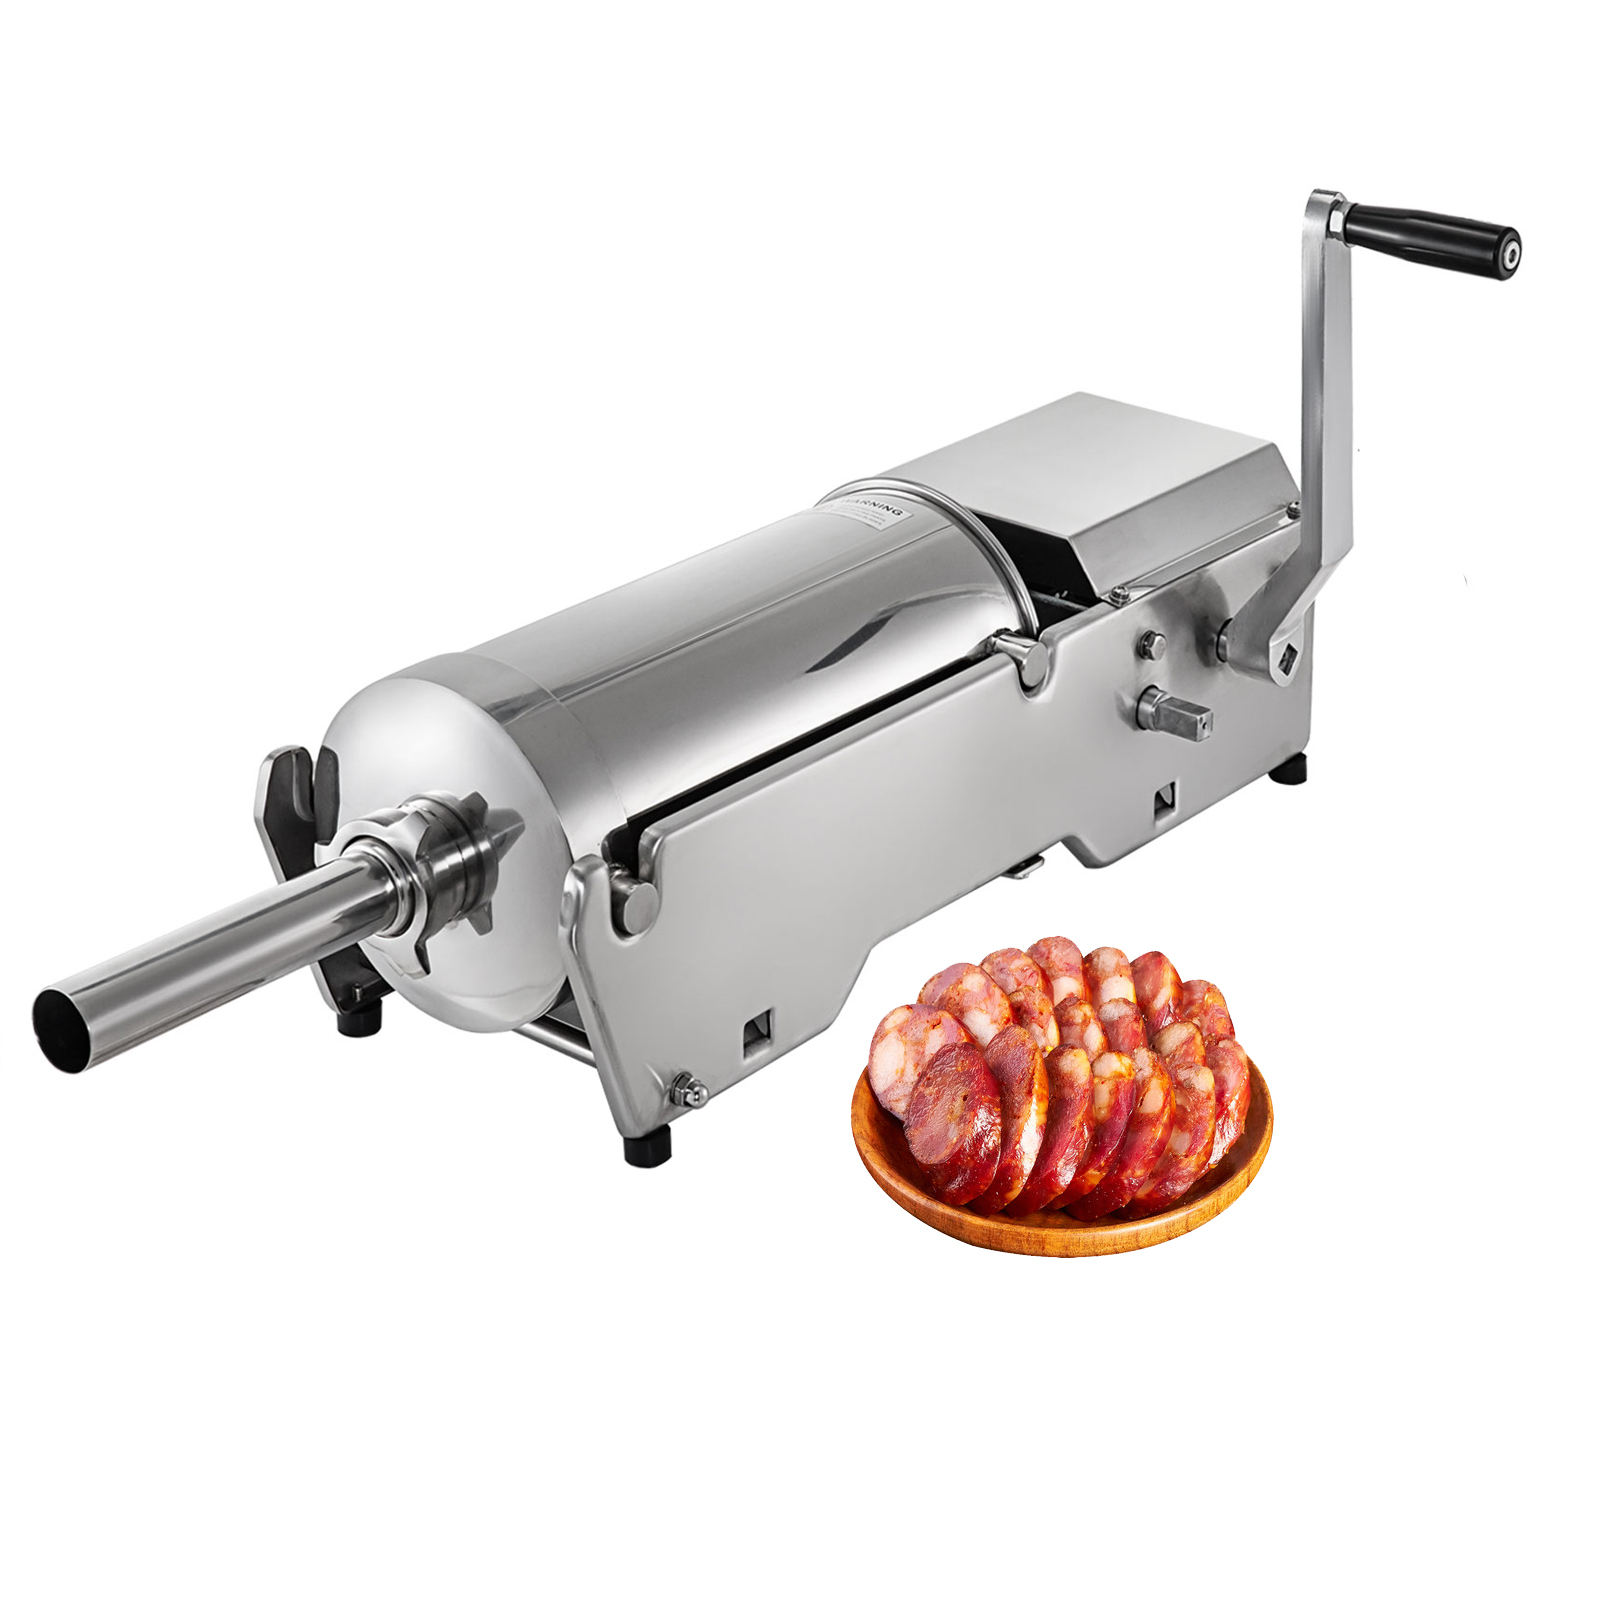 Manual Stainless Steel Sausage Stuffer 10L for sausage making sausage casing filling